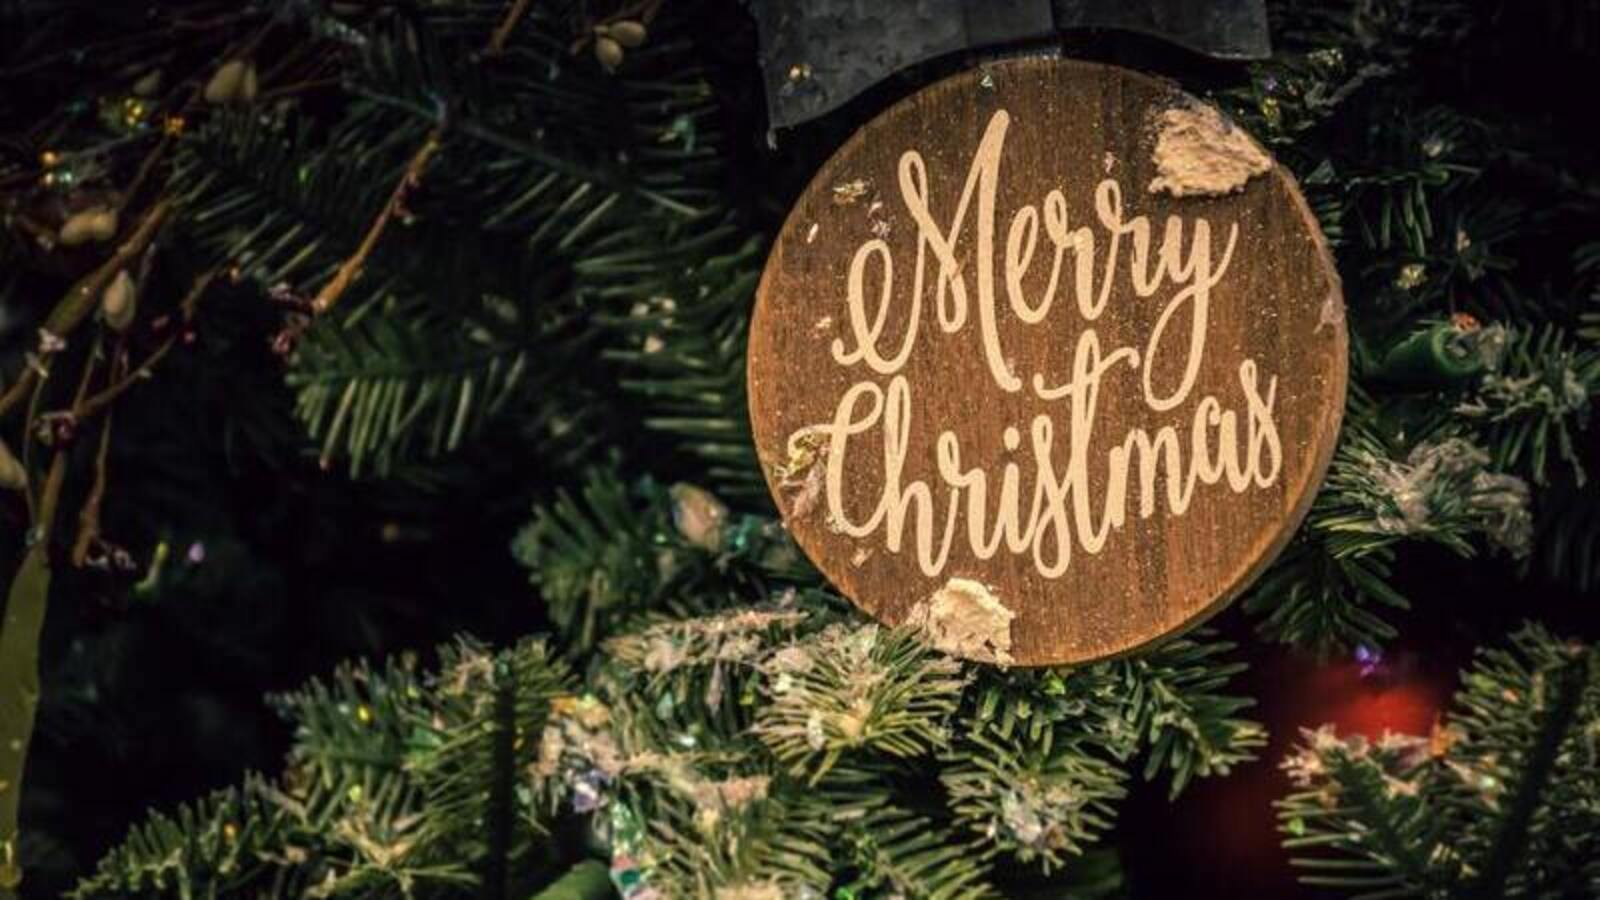 Knoxville Christmas Events 2019 - featured image 2